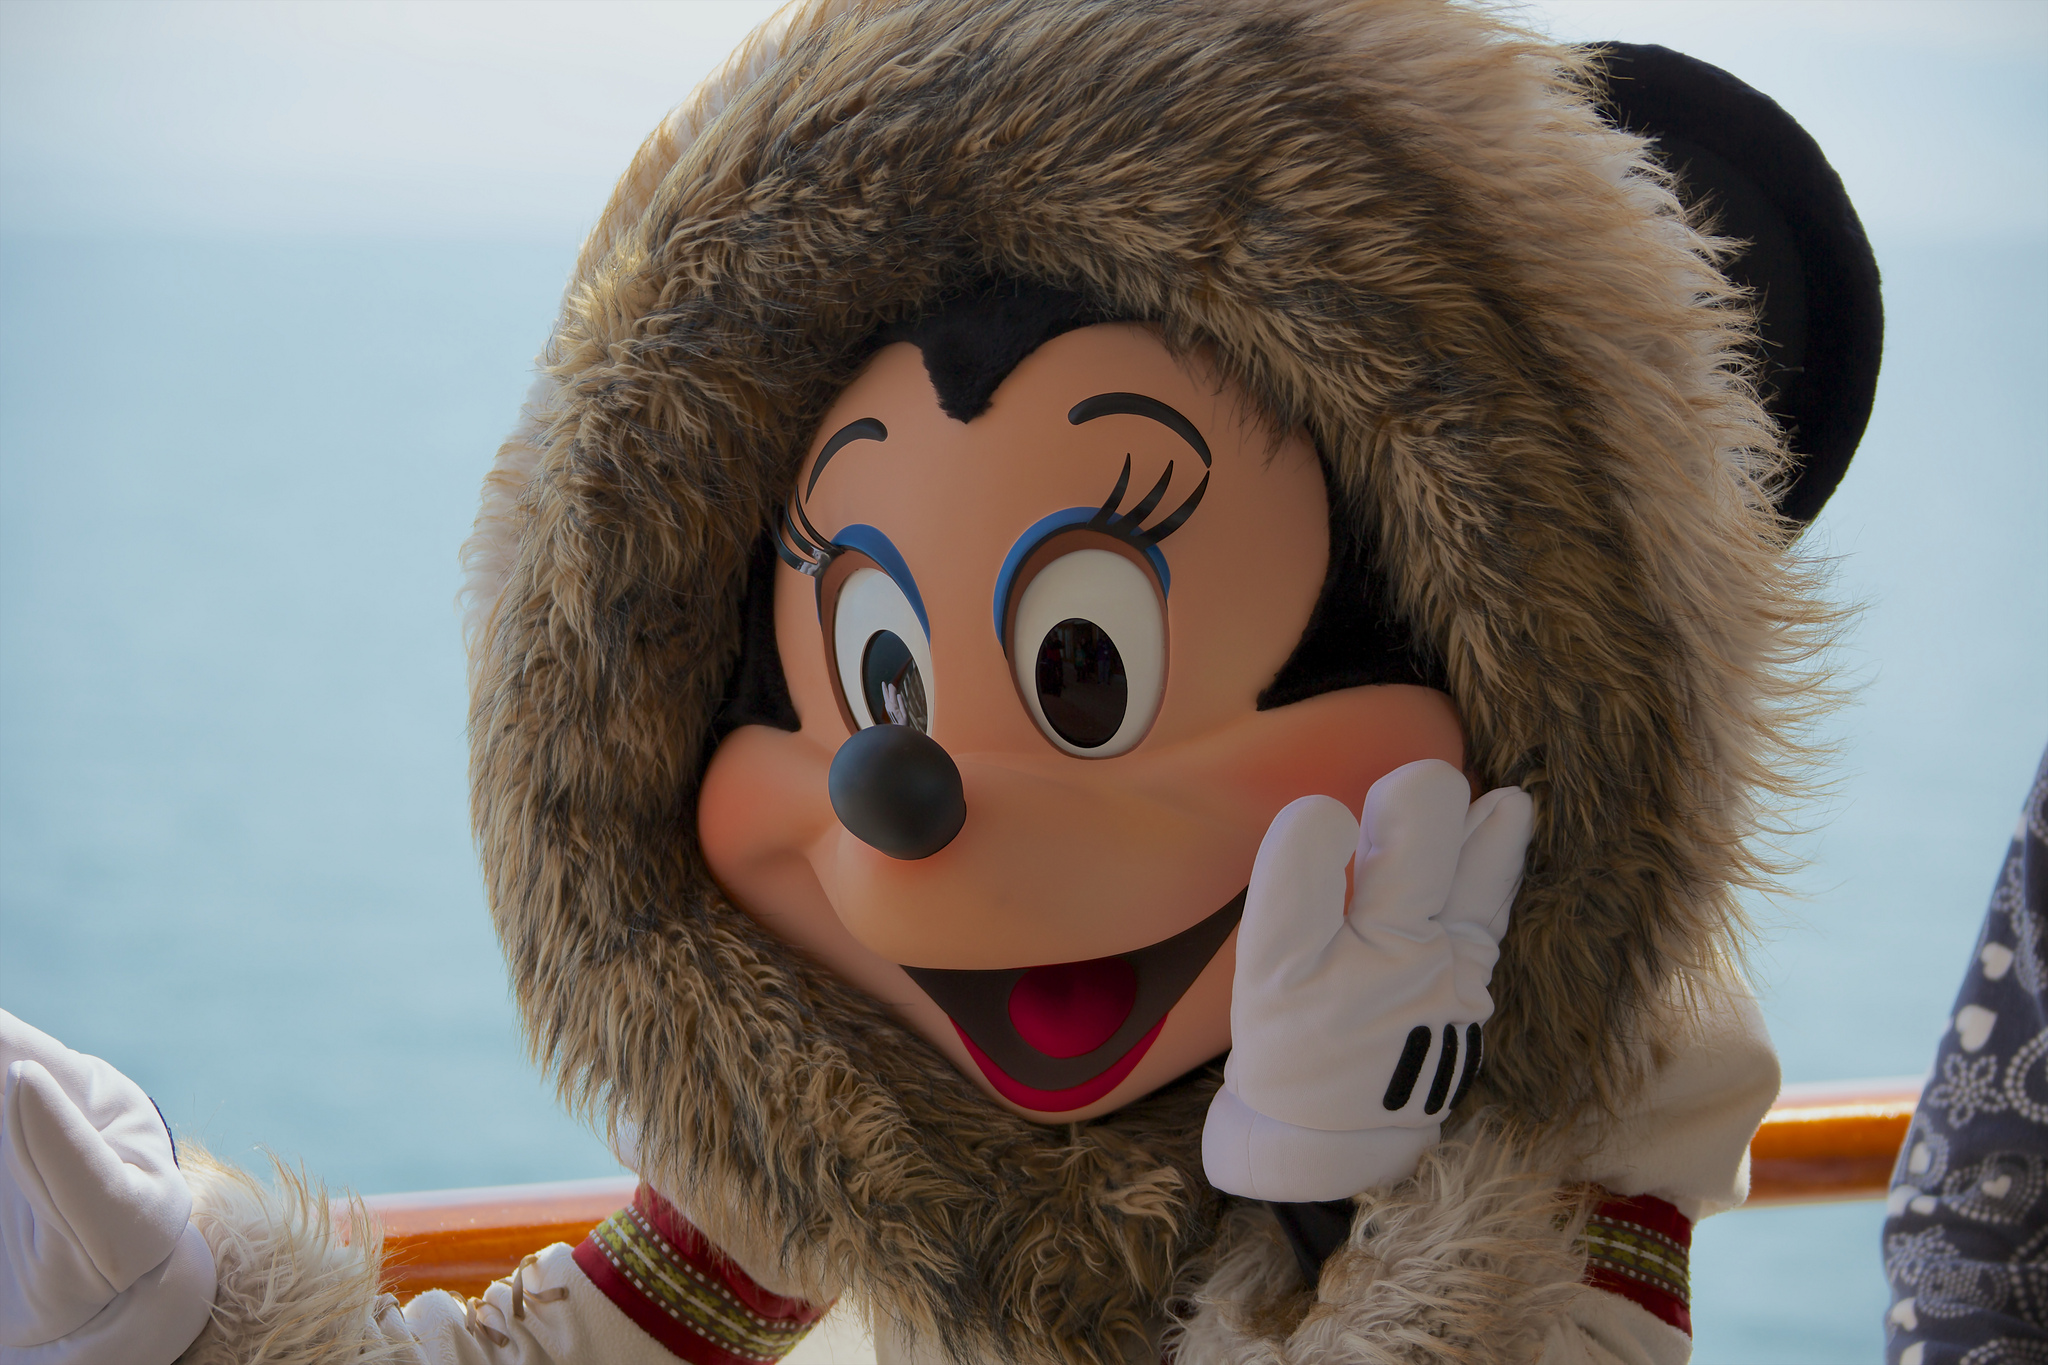 Disney Cruise Dress Code